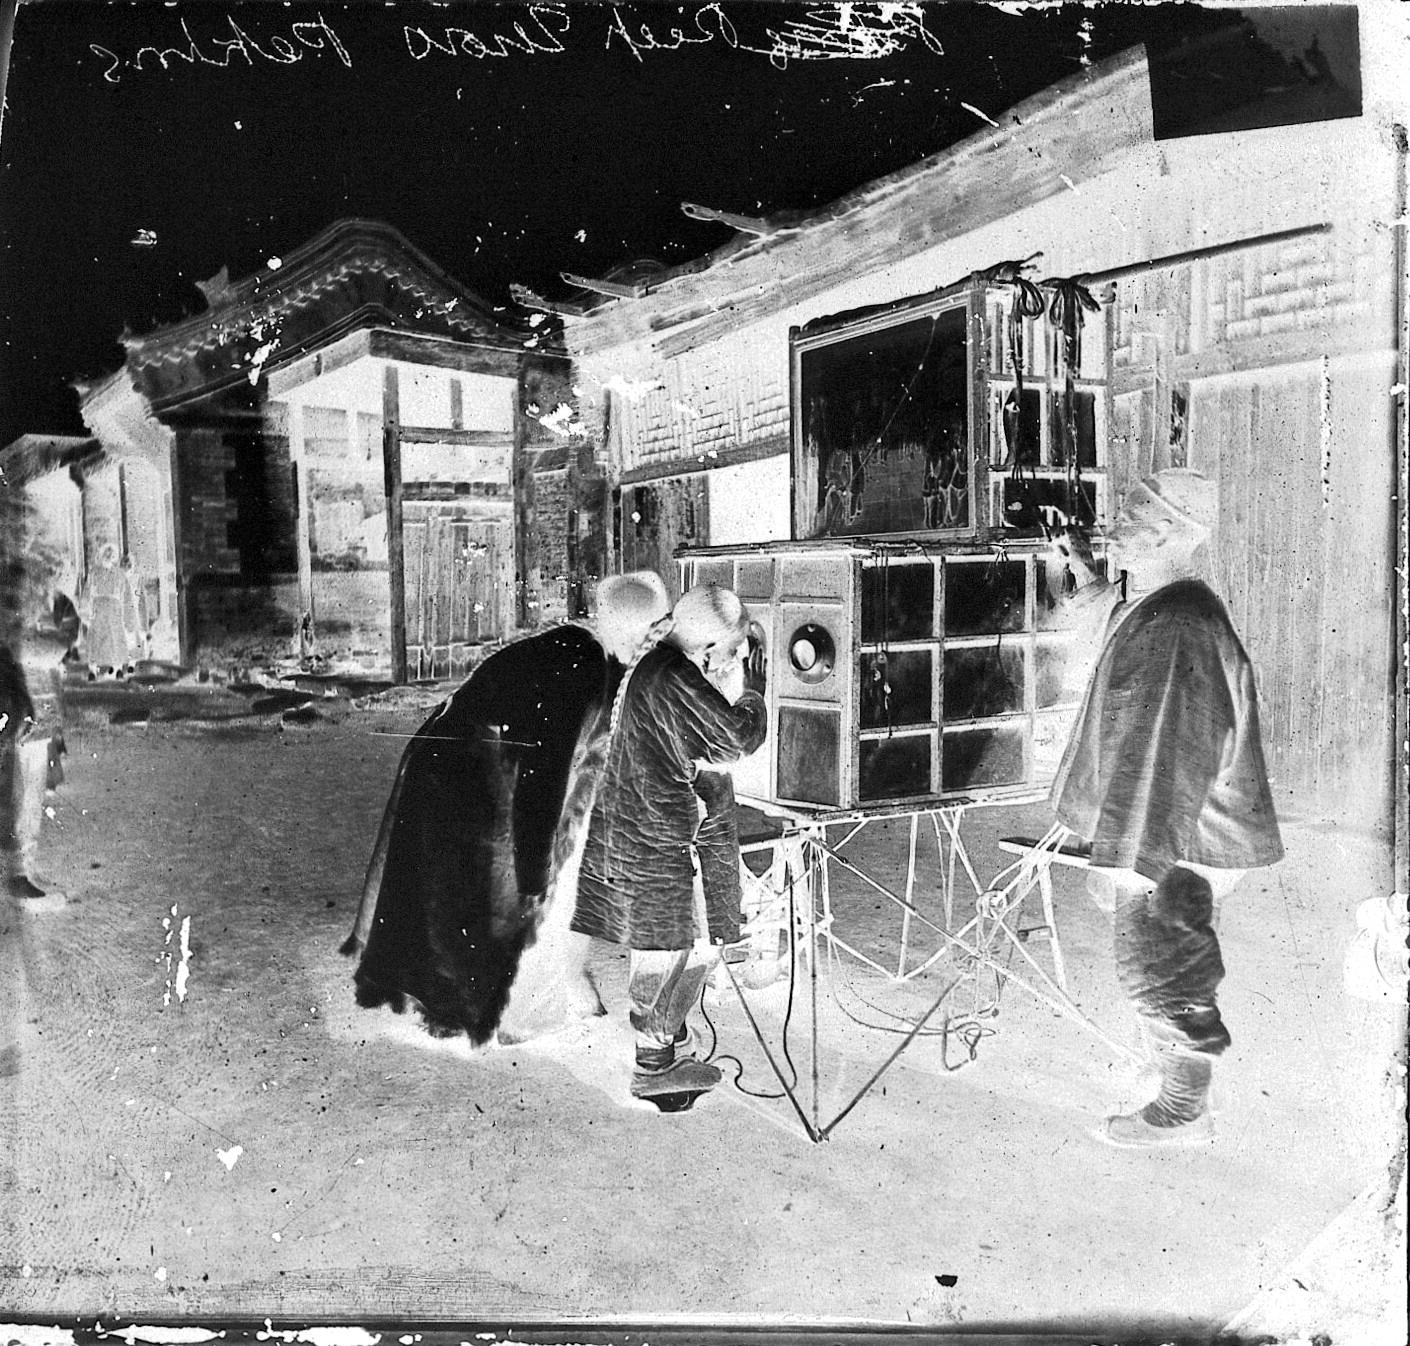 Looking at a peep show in the street, Beijing, c.1870. Photograph by John Thomson. The exhibition prints were made from glass negatives digitised by the Wellcome Collection. Credit: Wellcome Collection. Attribution 4.0 International (CC BY 4.0).